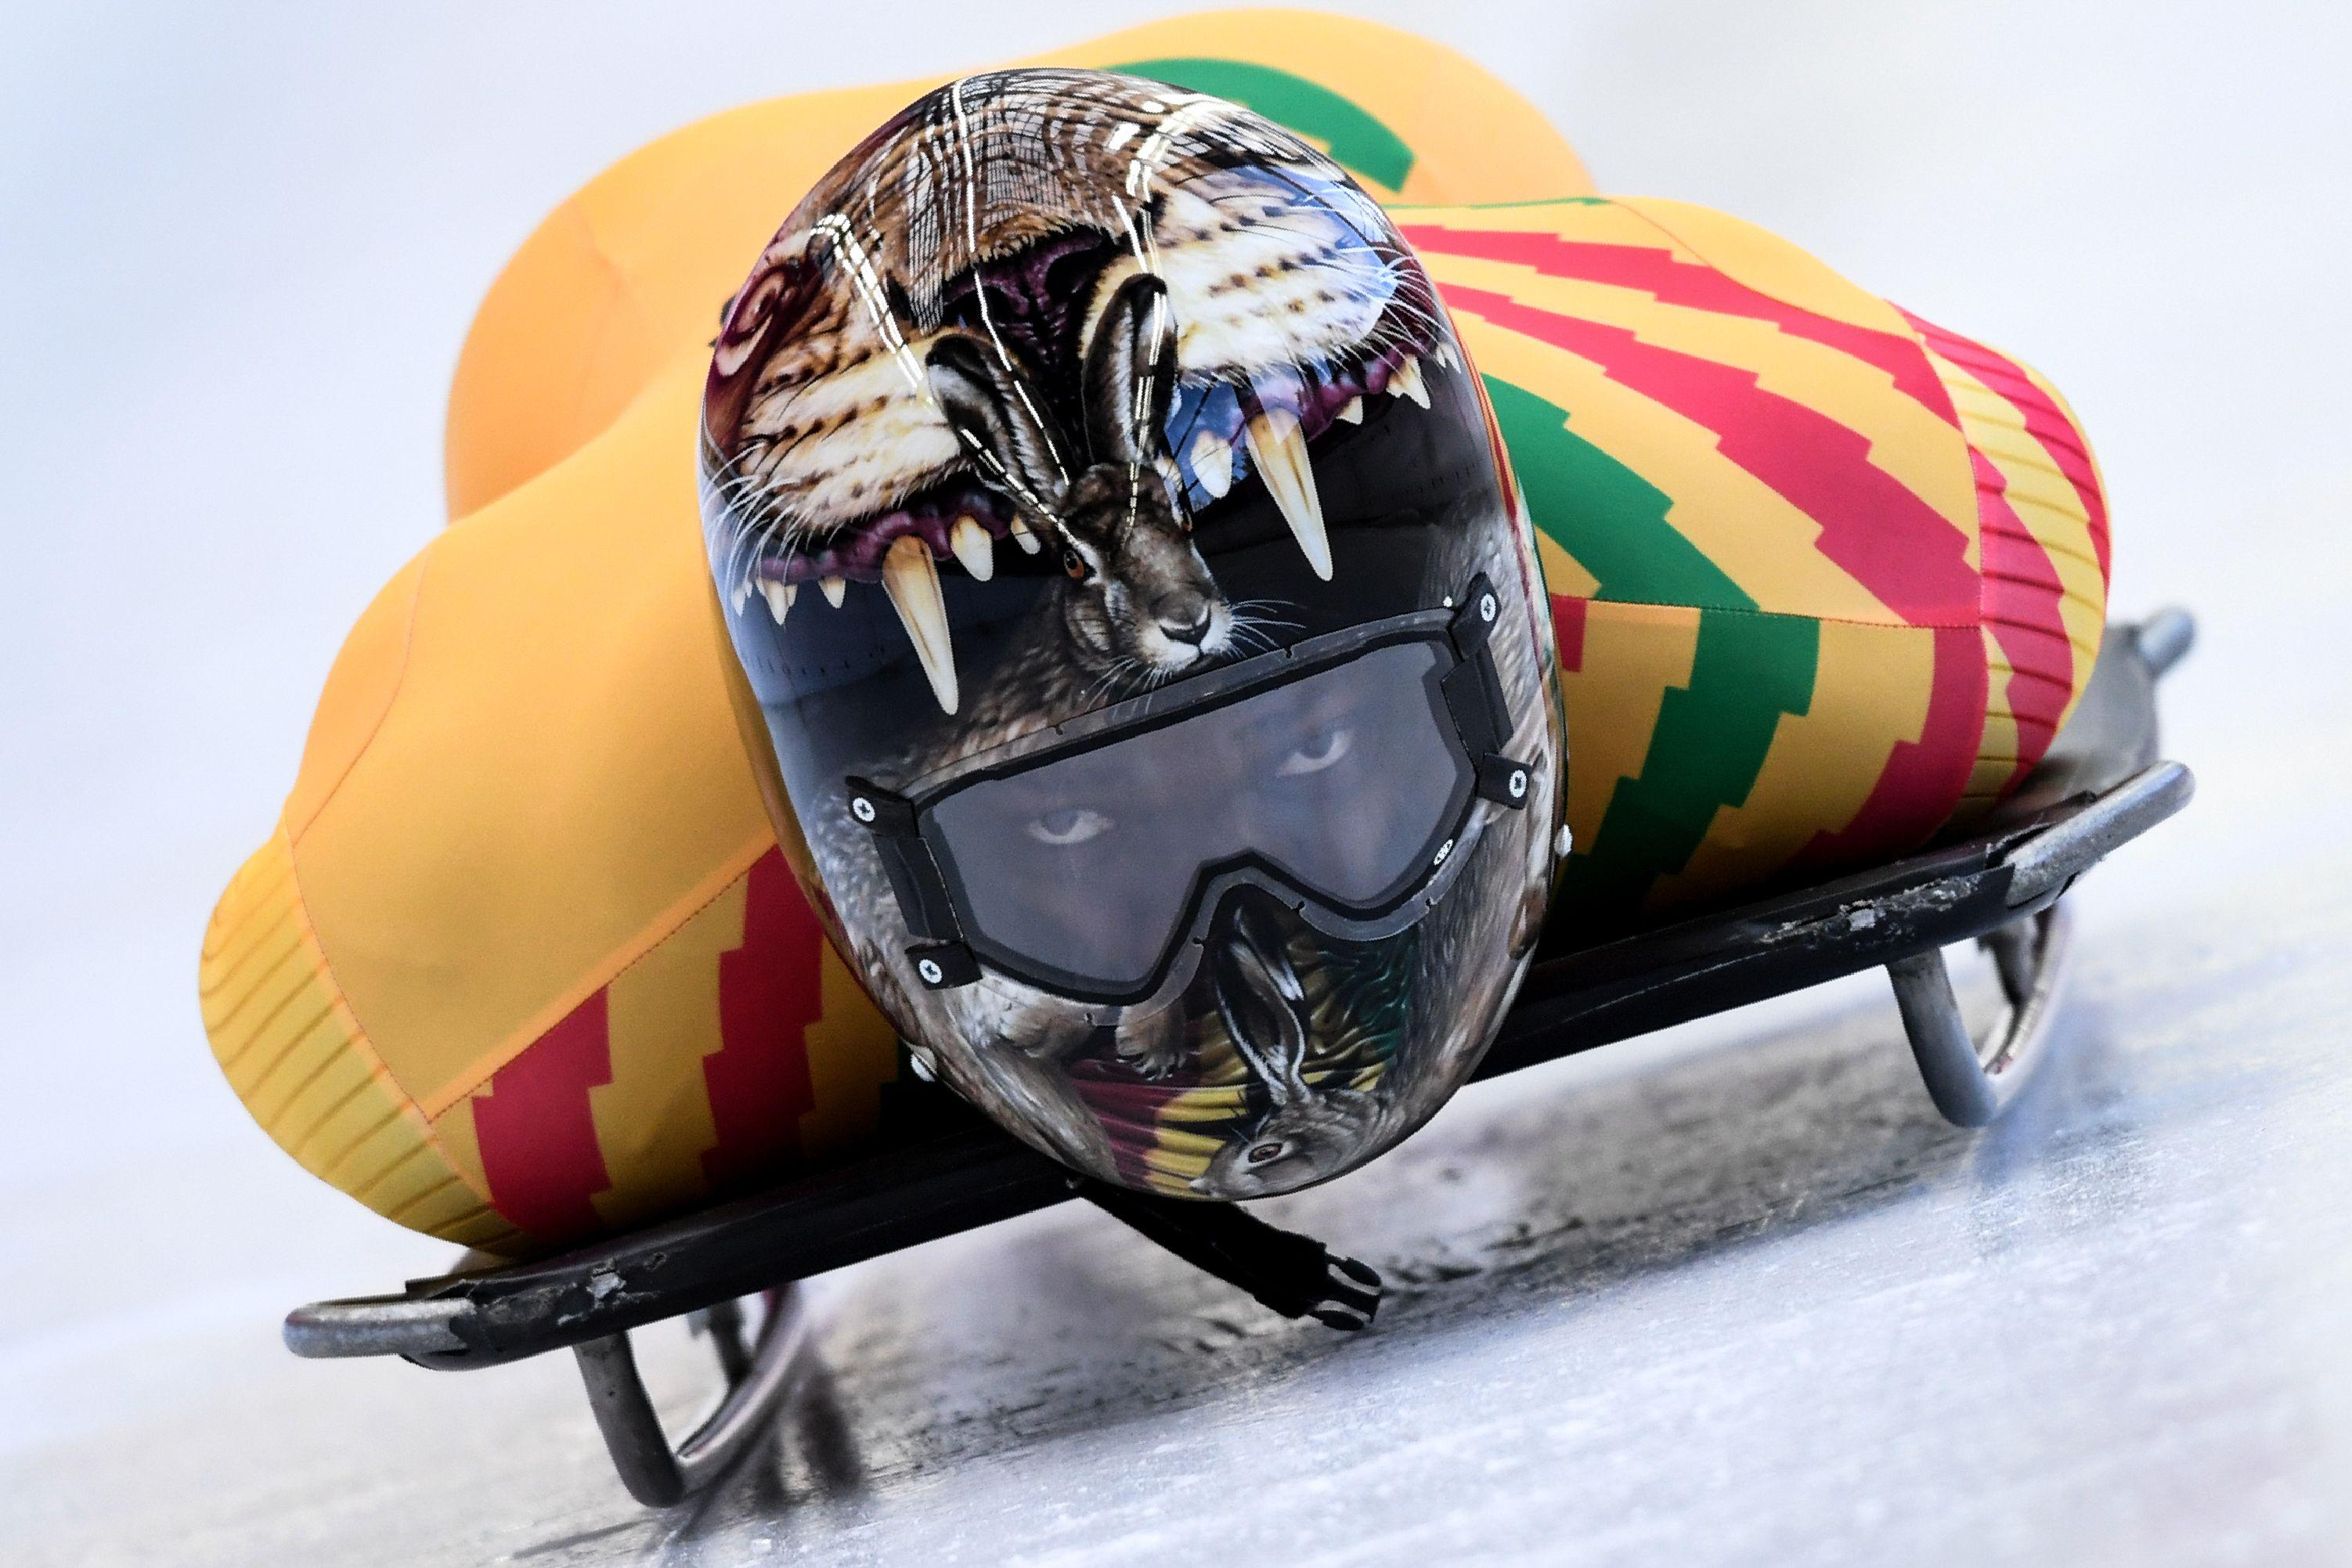 TOPSHOT - Ghana's Akwasi Frimpong takes part in a training session for the men's skeleton event at the Olympic Sliding Centre, during the Pyeongchang 2018 Winter Olympic Games in Pyeongchang, on February 11, 2018.                   / AFP PHOTO / Kirill KUDRYAVTSEV        (Photo credit should read KIRILL KUDRYAVTSEV/AFP/Getty Images)